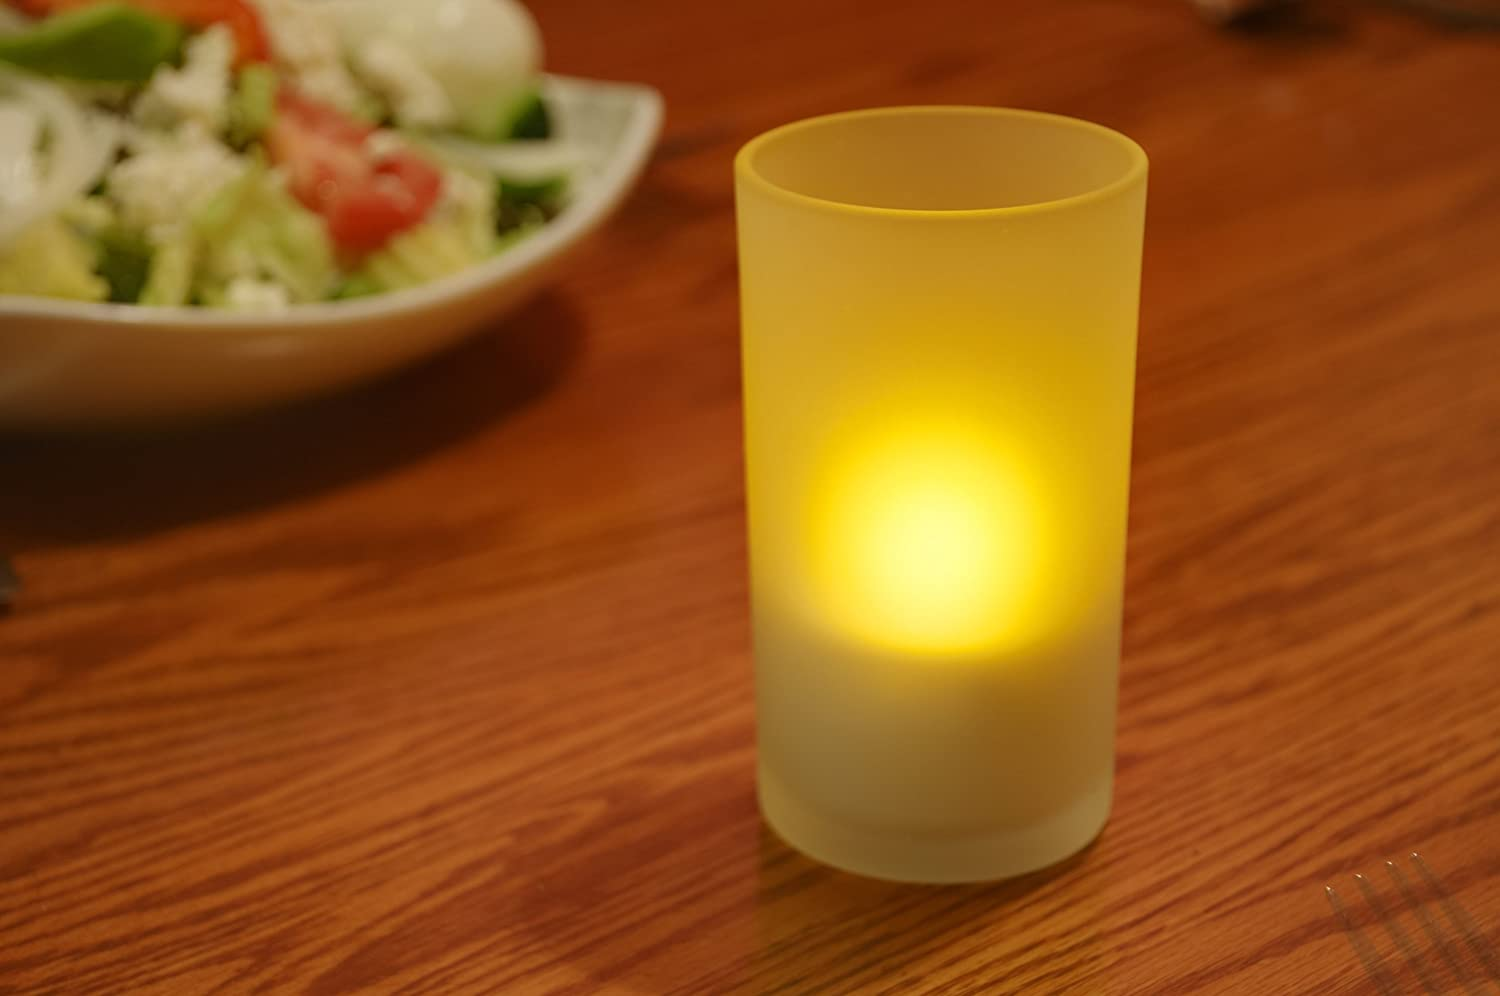 Mr Light Set Of 12 Restaurant Quality Rechargeable Led Candle With Realistic Flicker And Circuit Board Style Tealights Flickering Amber Leds Glass Holders Home Kitchen